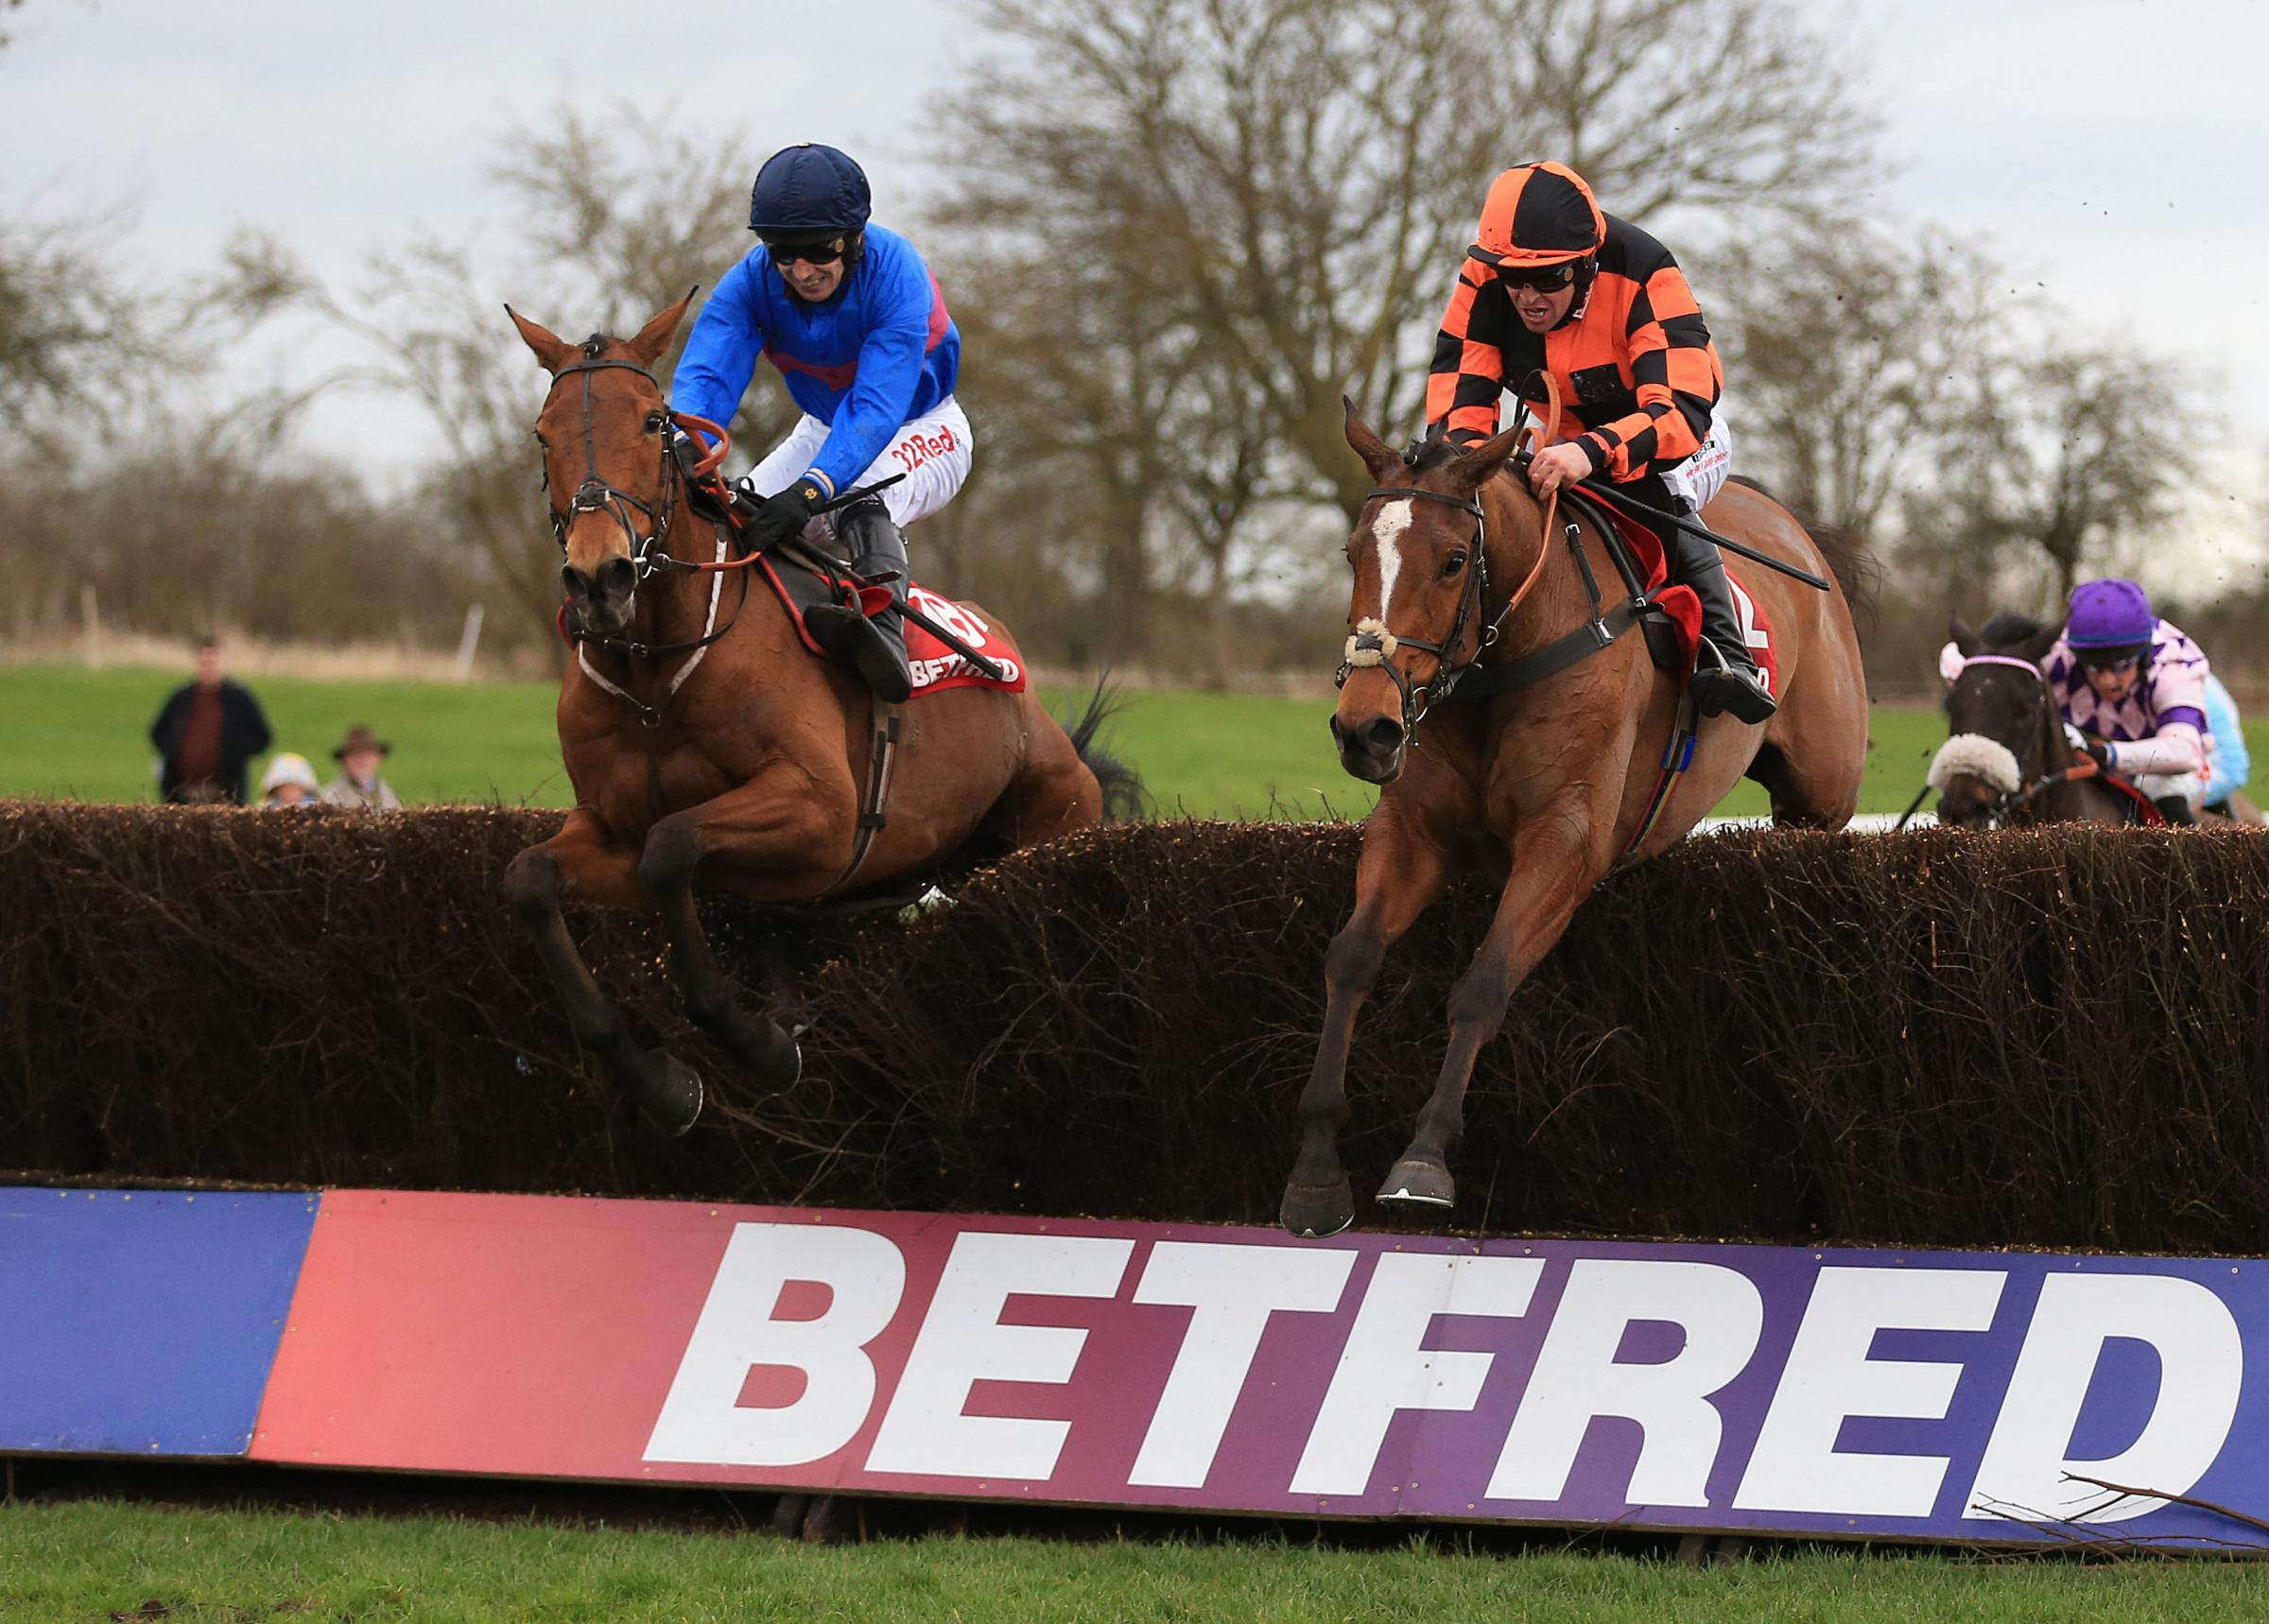 Chase The Spud (left) ridden by Paddy Brennan goes onto wins The Betfred Midlands Grand National (an open handicap steeple chase) ahead of Mystree ridden by Robert Dunne in second  at Uttoxeter Racecourse. PRESS ASSOCIATION Photo. Picture date: Saturday M